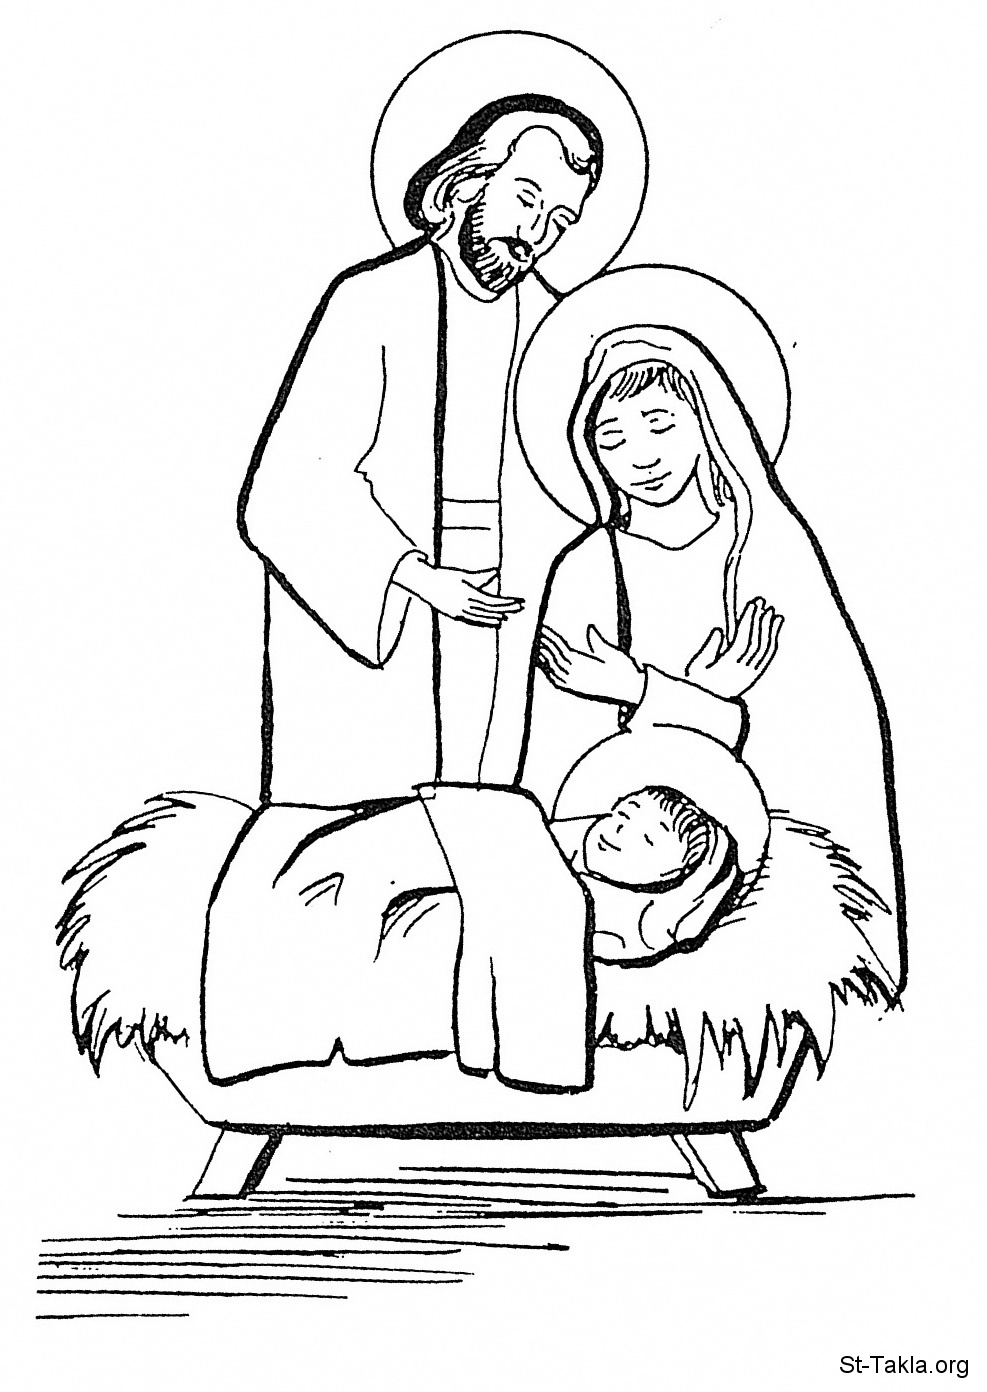 baby jesus in a manger coloring pages xmas coloring pages pages manger in baby jesus coloring a